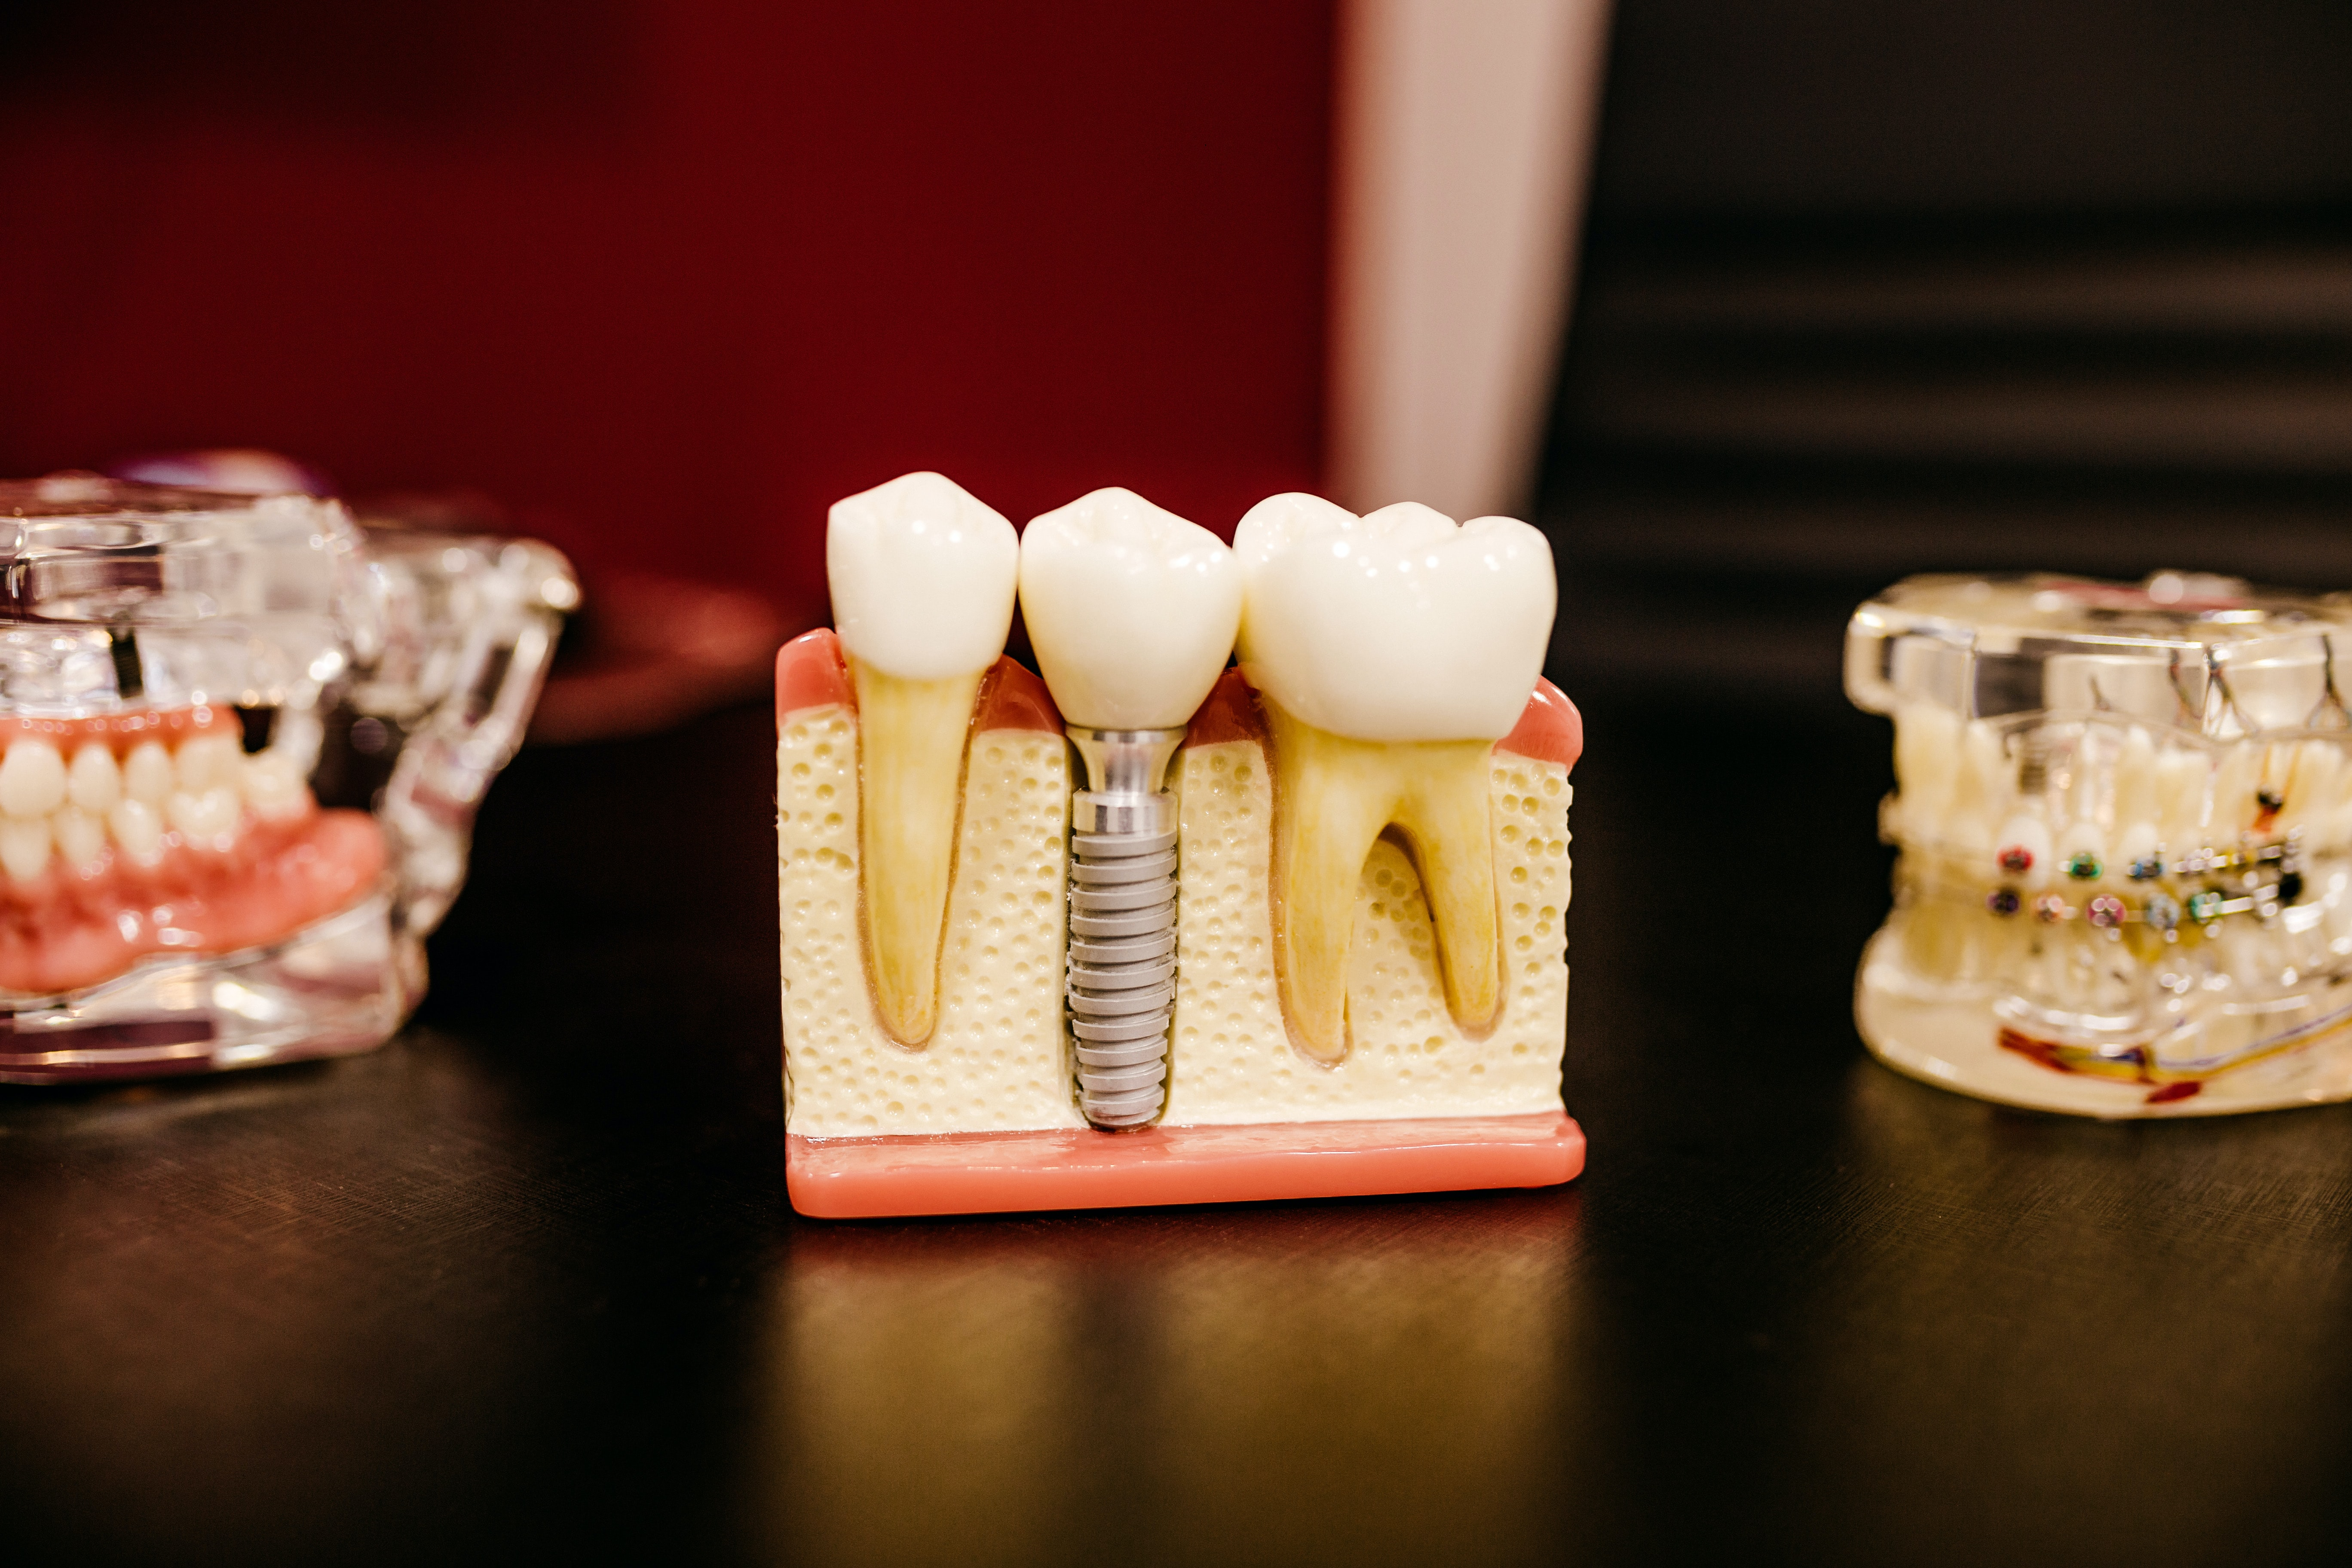 What Factors Might Contribute to Tooth Loss?